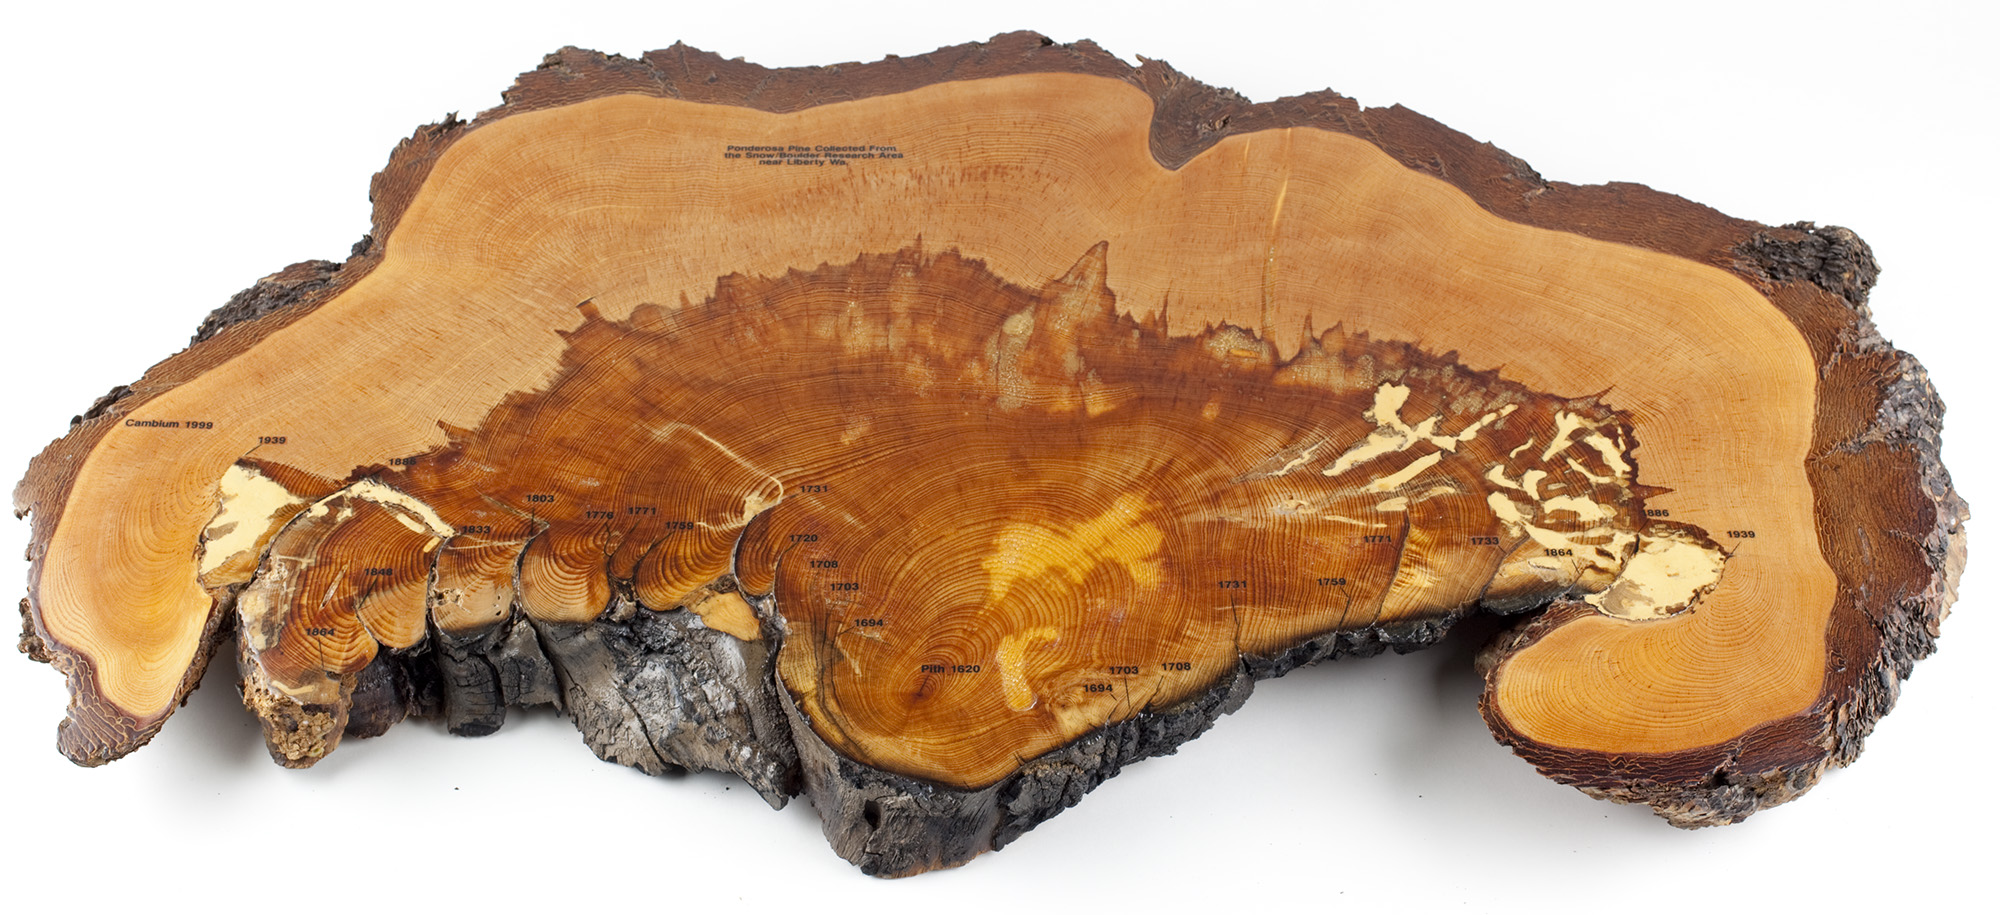 Slice of ponderosa pine log showing fire scars. From Wenatchee Forestry Sciences Lab collection.From Snow Boulder Research Area near Liberty, WA.